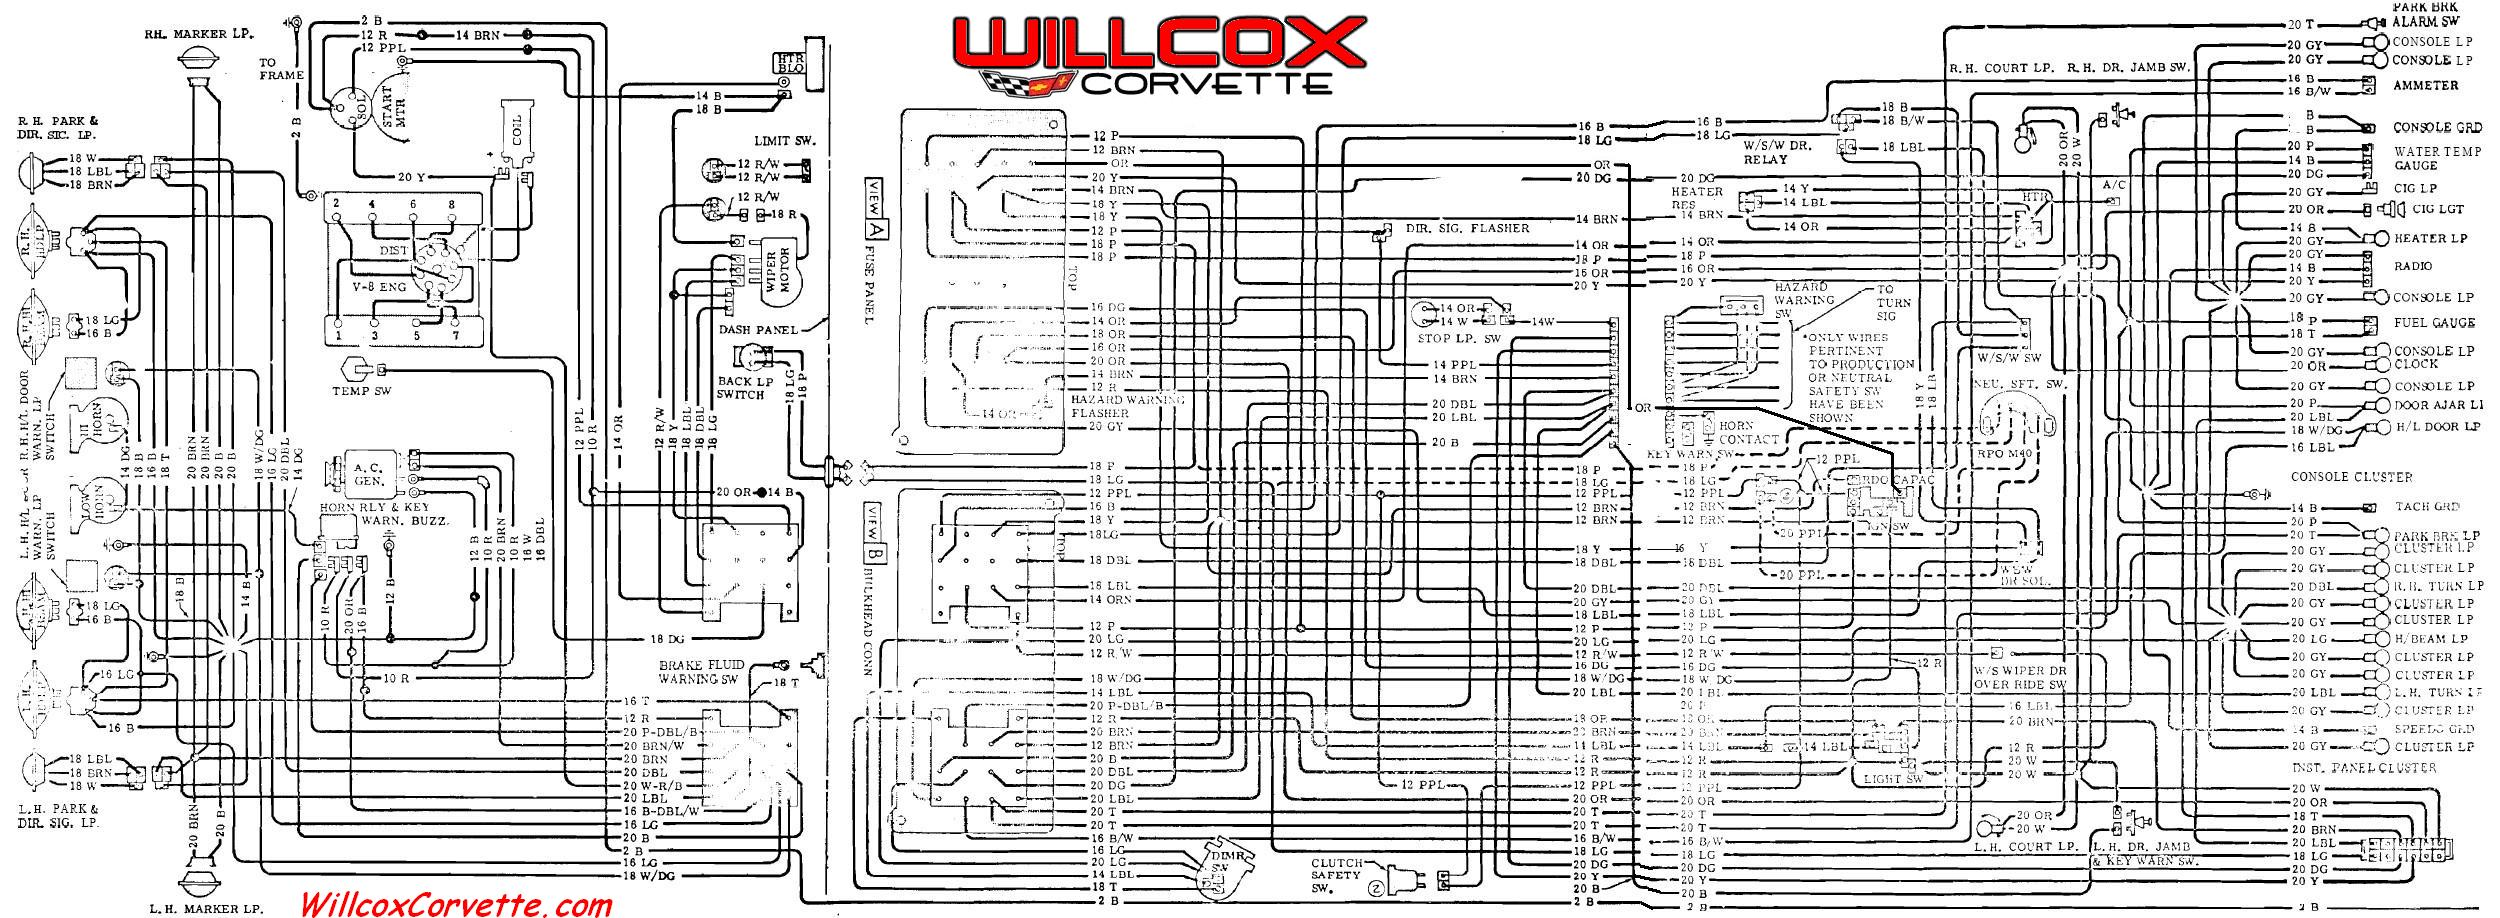 1997 Corvette Wiring Diagram Another Blog About 2000 1969 Main And Engine Compartment